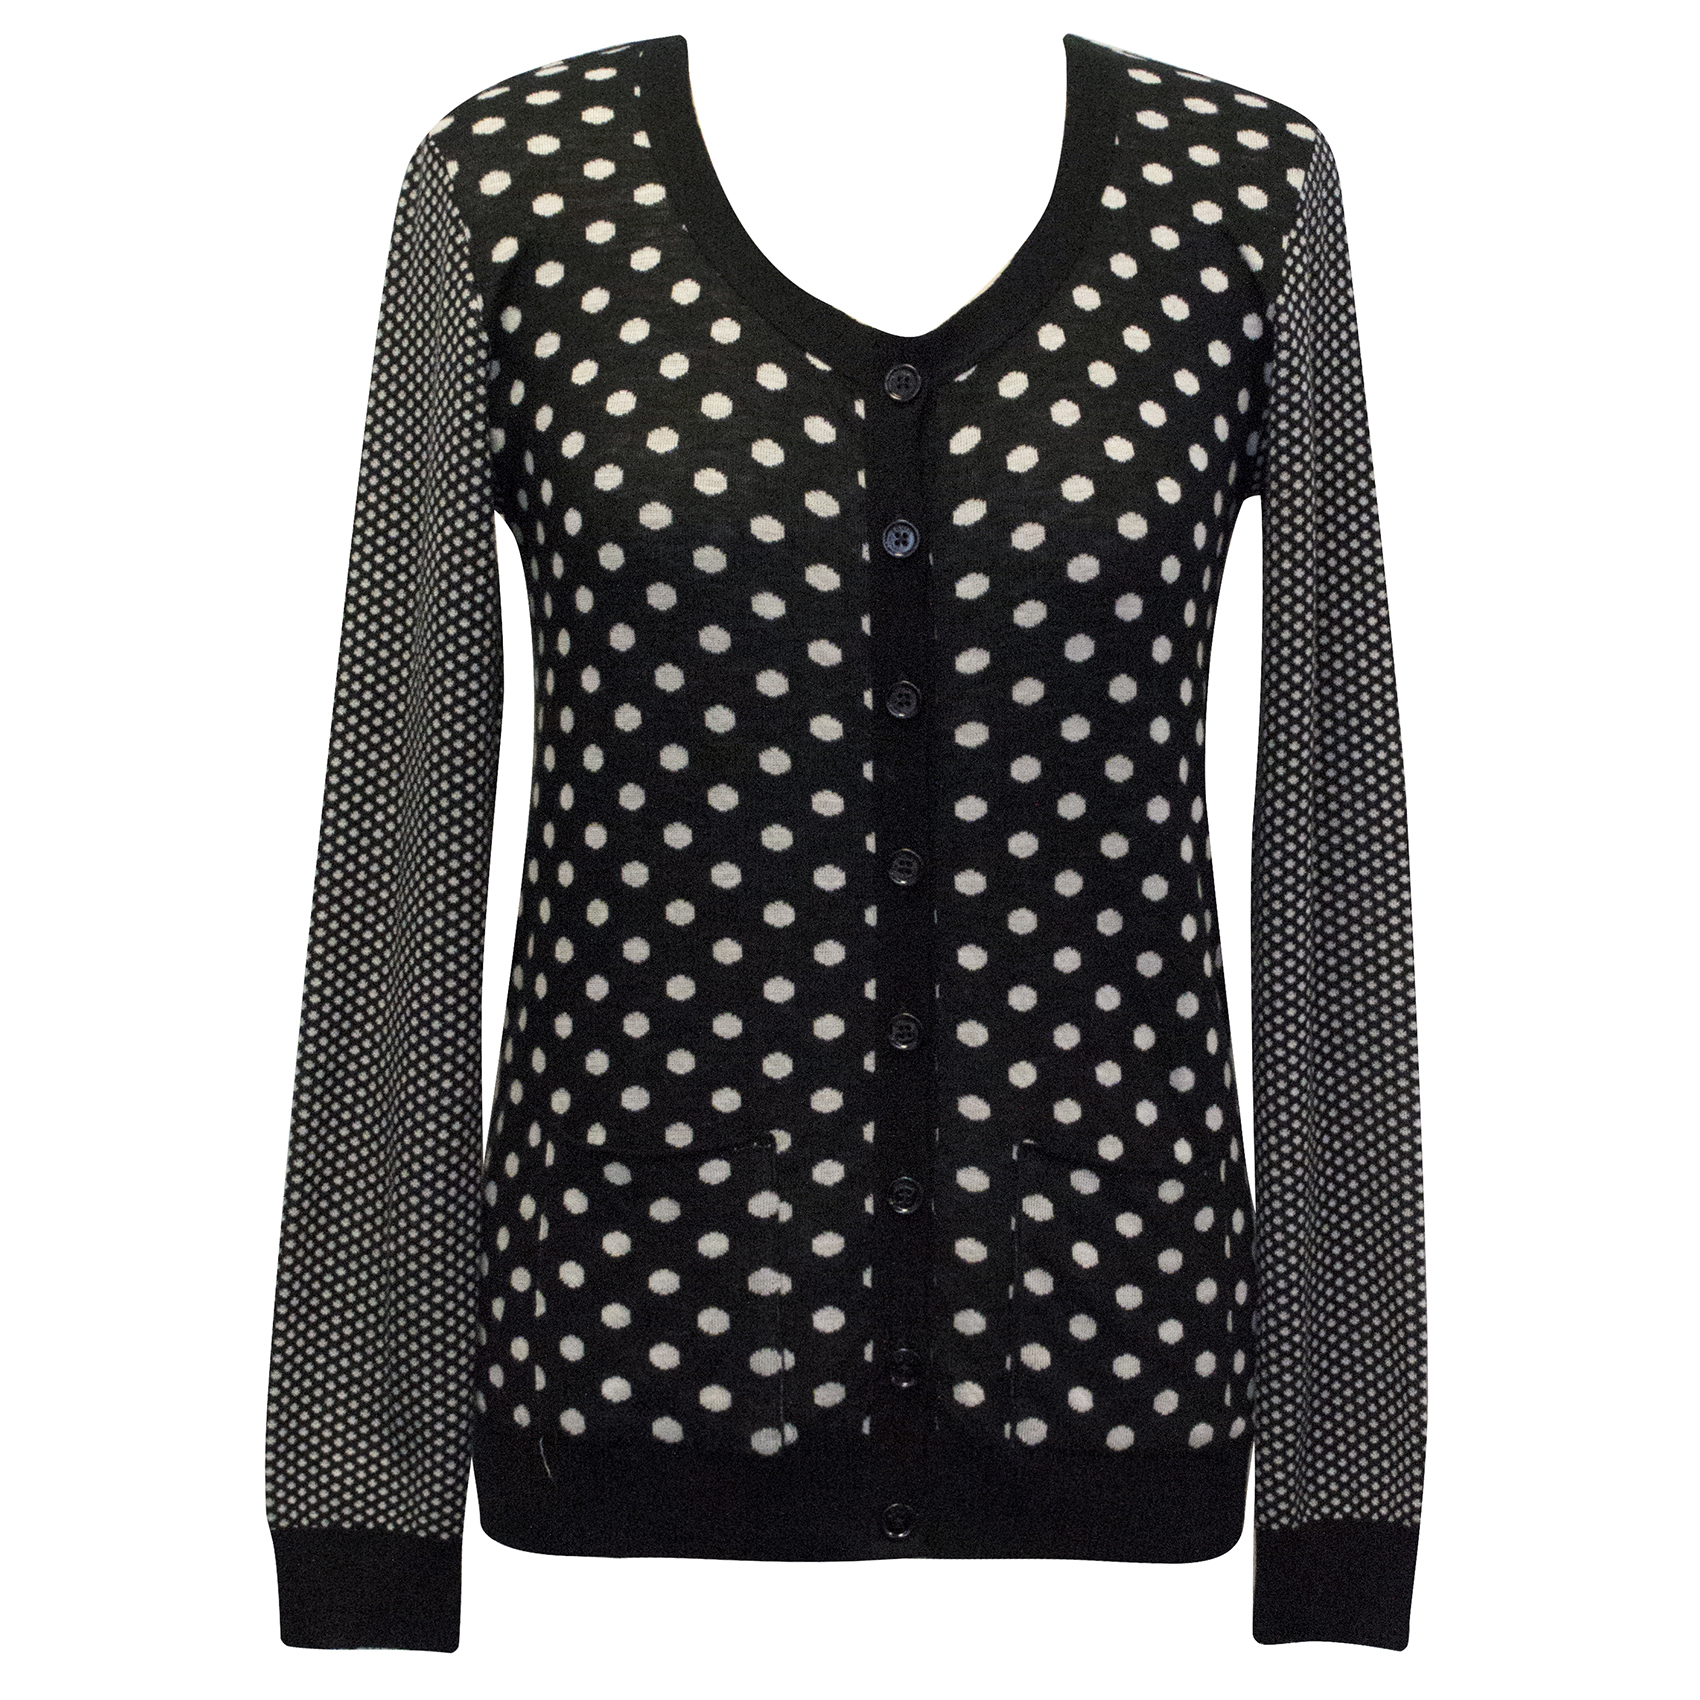 Sonia by Sonia Rykiel Cotton Polka Dot Cardigan